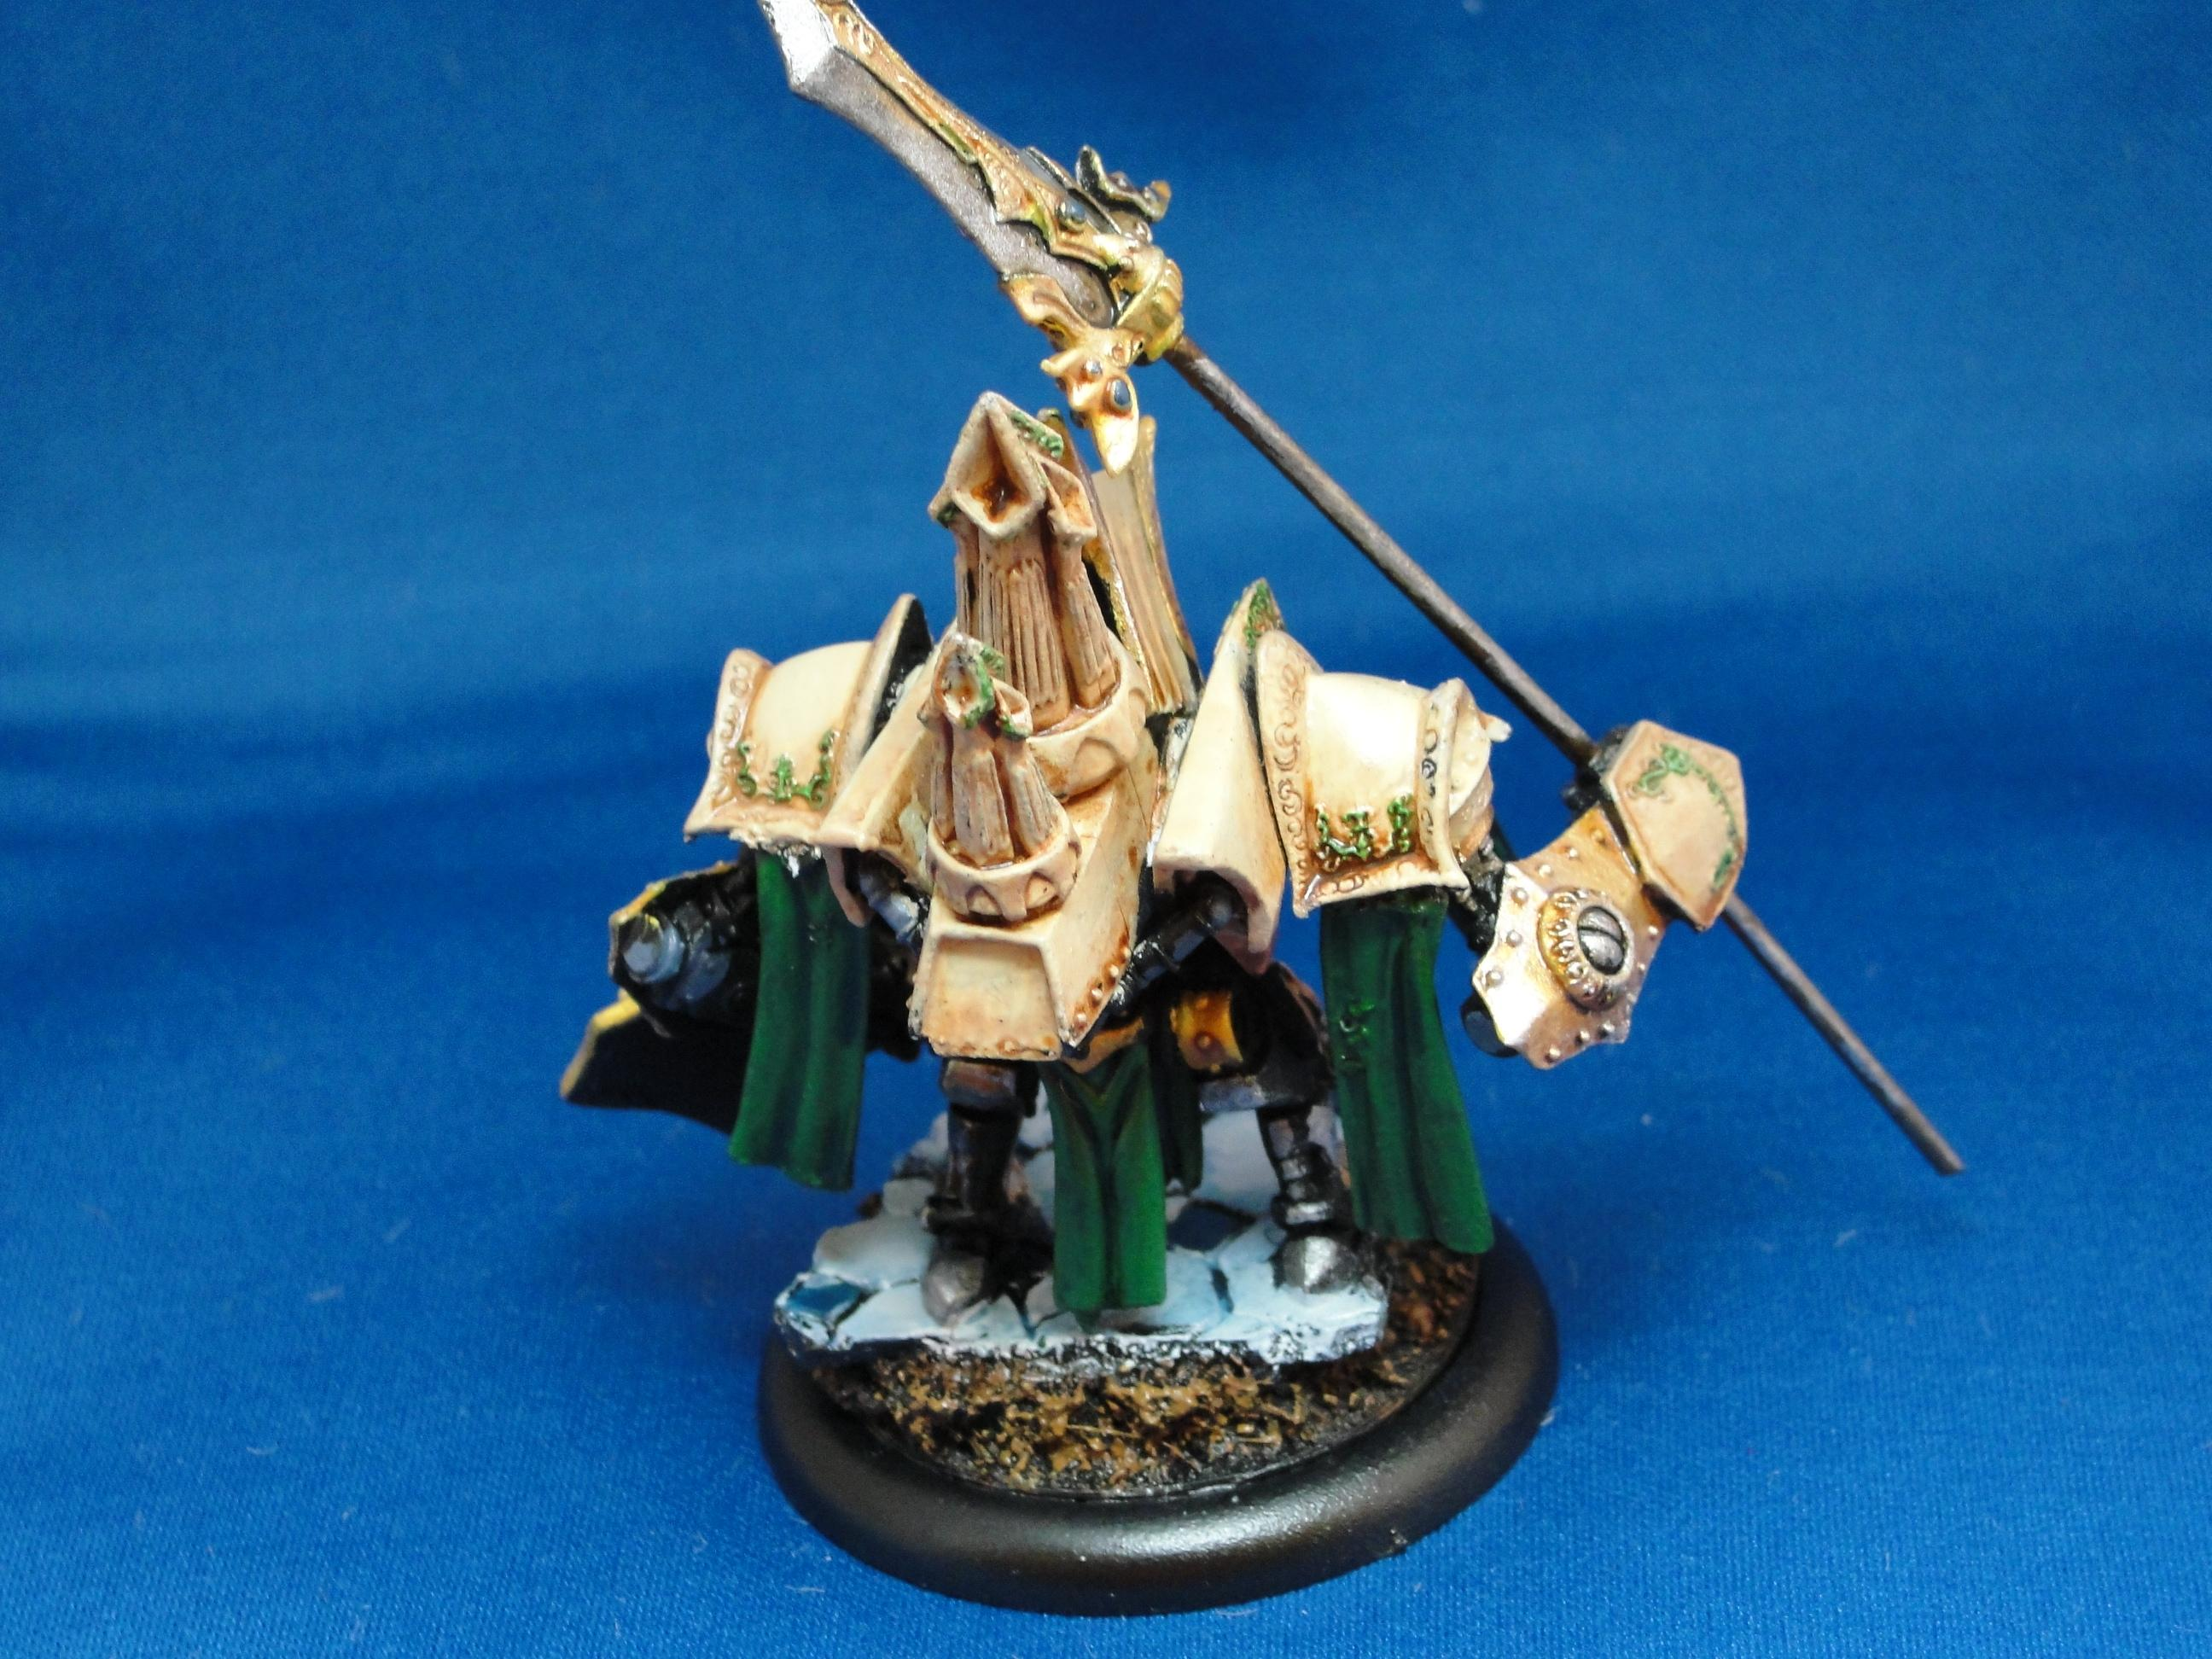 Warmachine, Protectorate of Menoth, Warjack, Avatar of Menoth